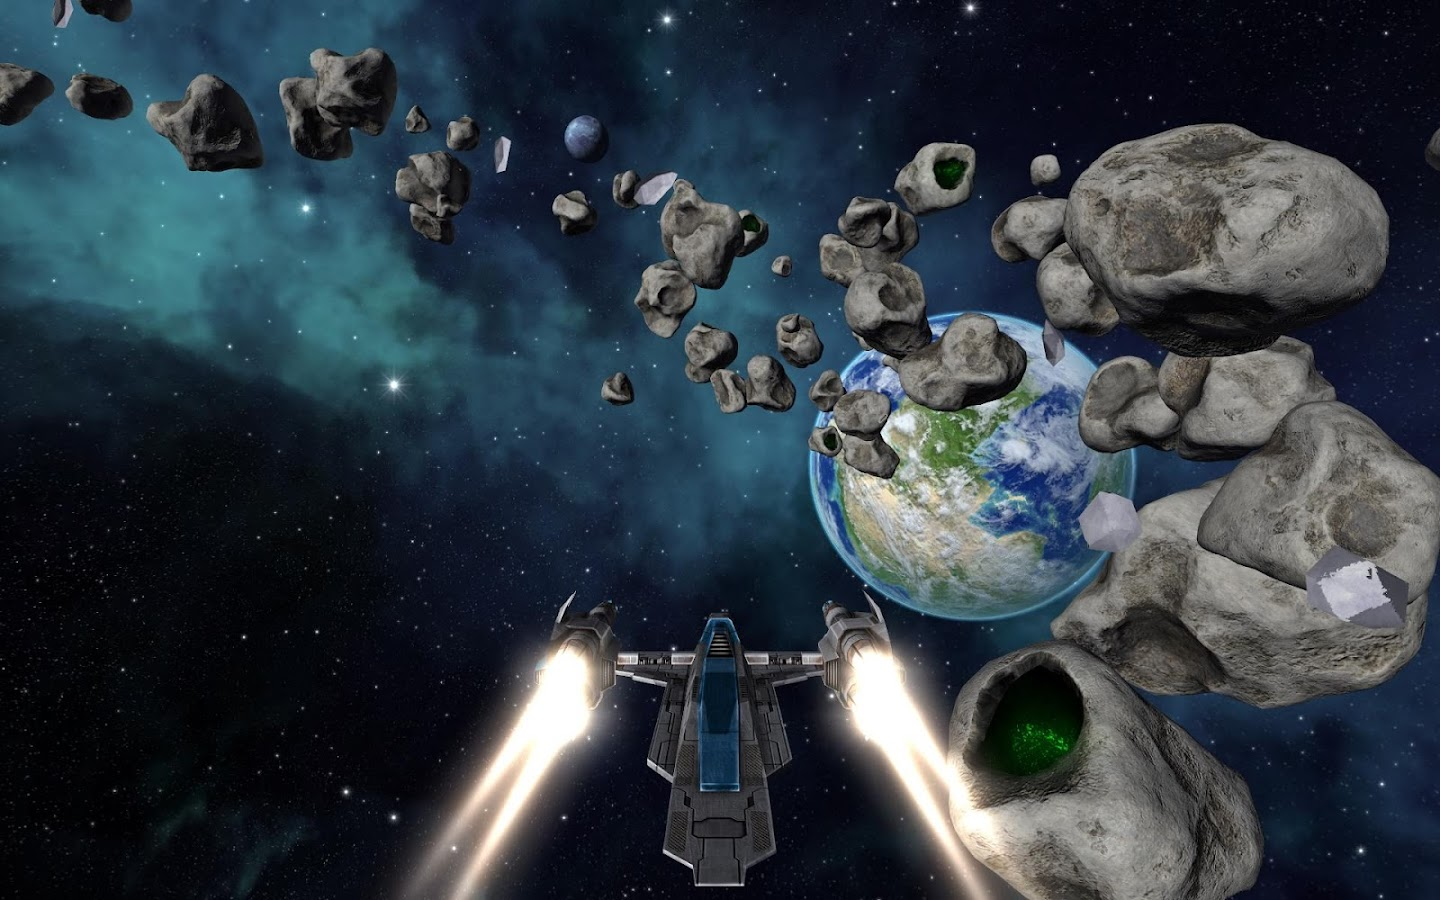 Vendetta online 3d space mmo android apps on google play for Online 3d